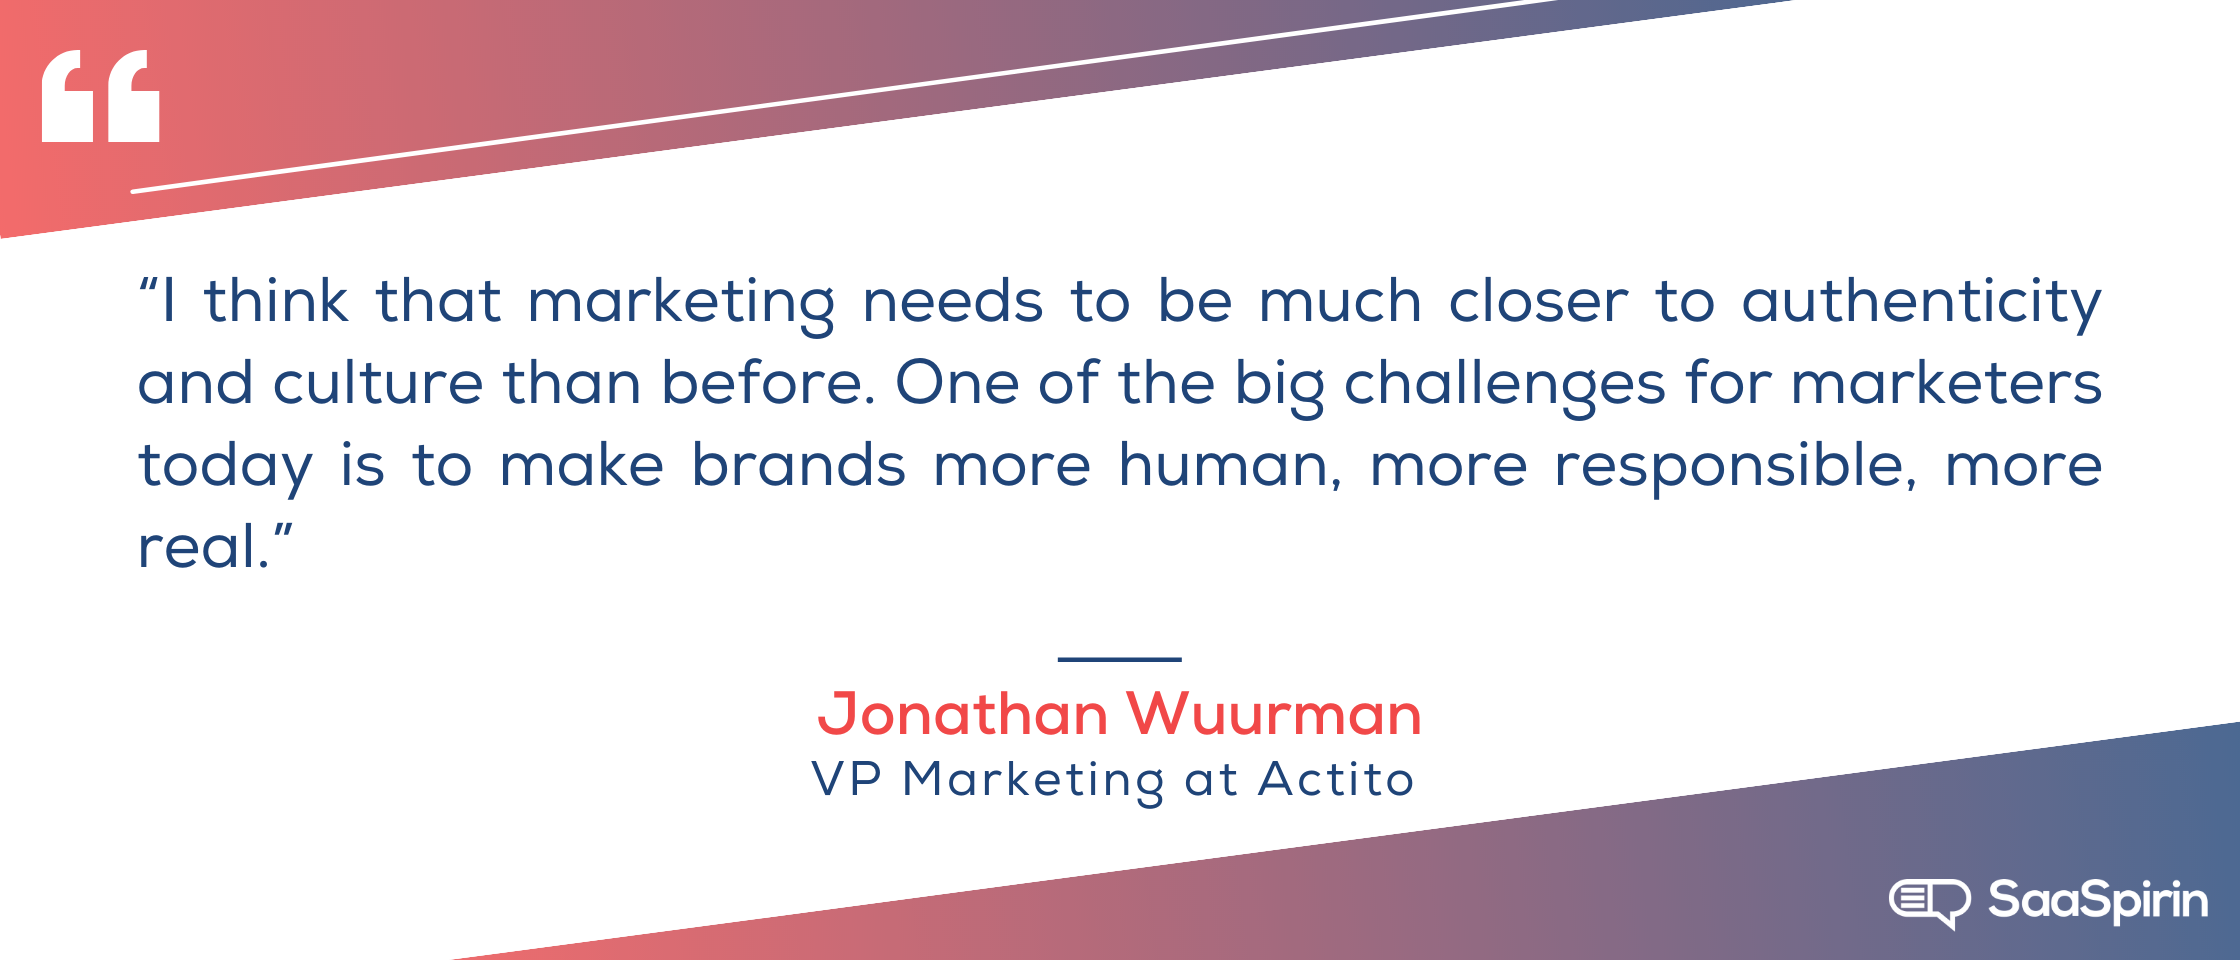 I-think-that-marketing-needs-to-be-much-closer-to-authenticity-and-culture-than-before-One-of-the-big-challenges-for-marketers-today-is-to-make-brands-more-human-more-responsible-more-real.png